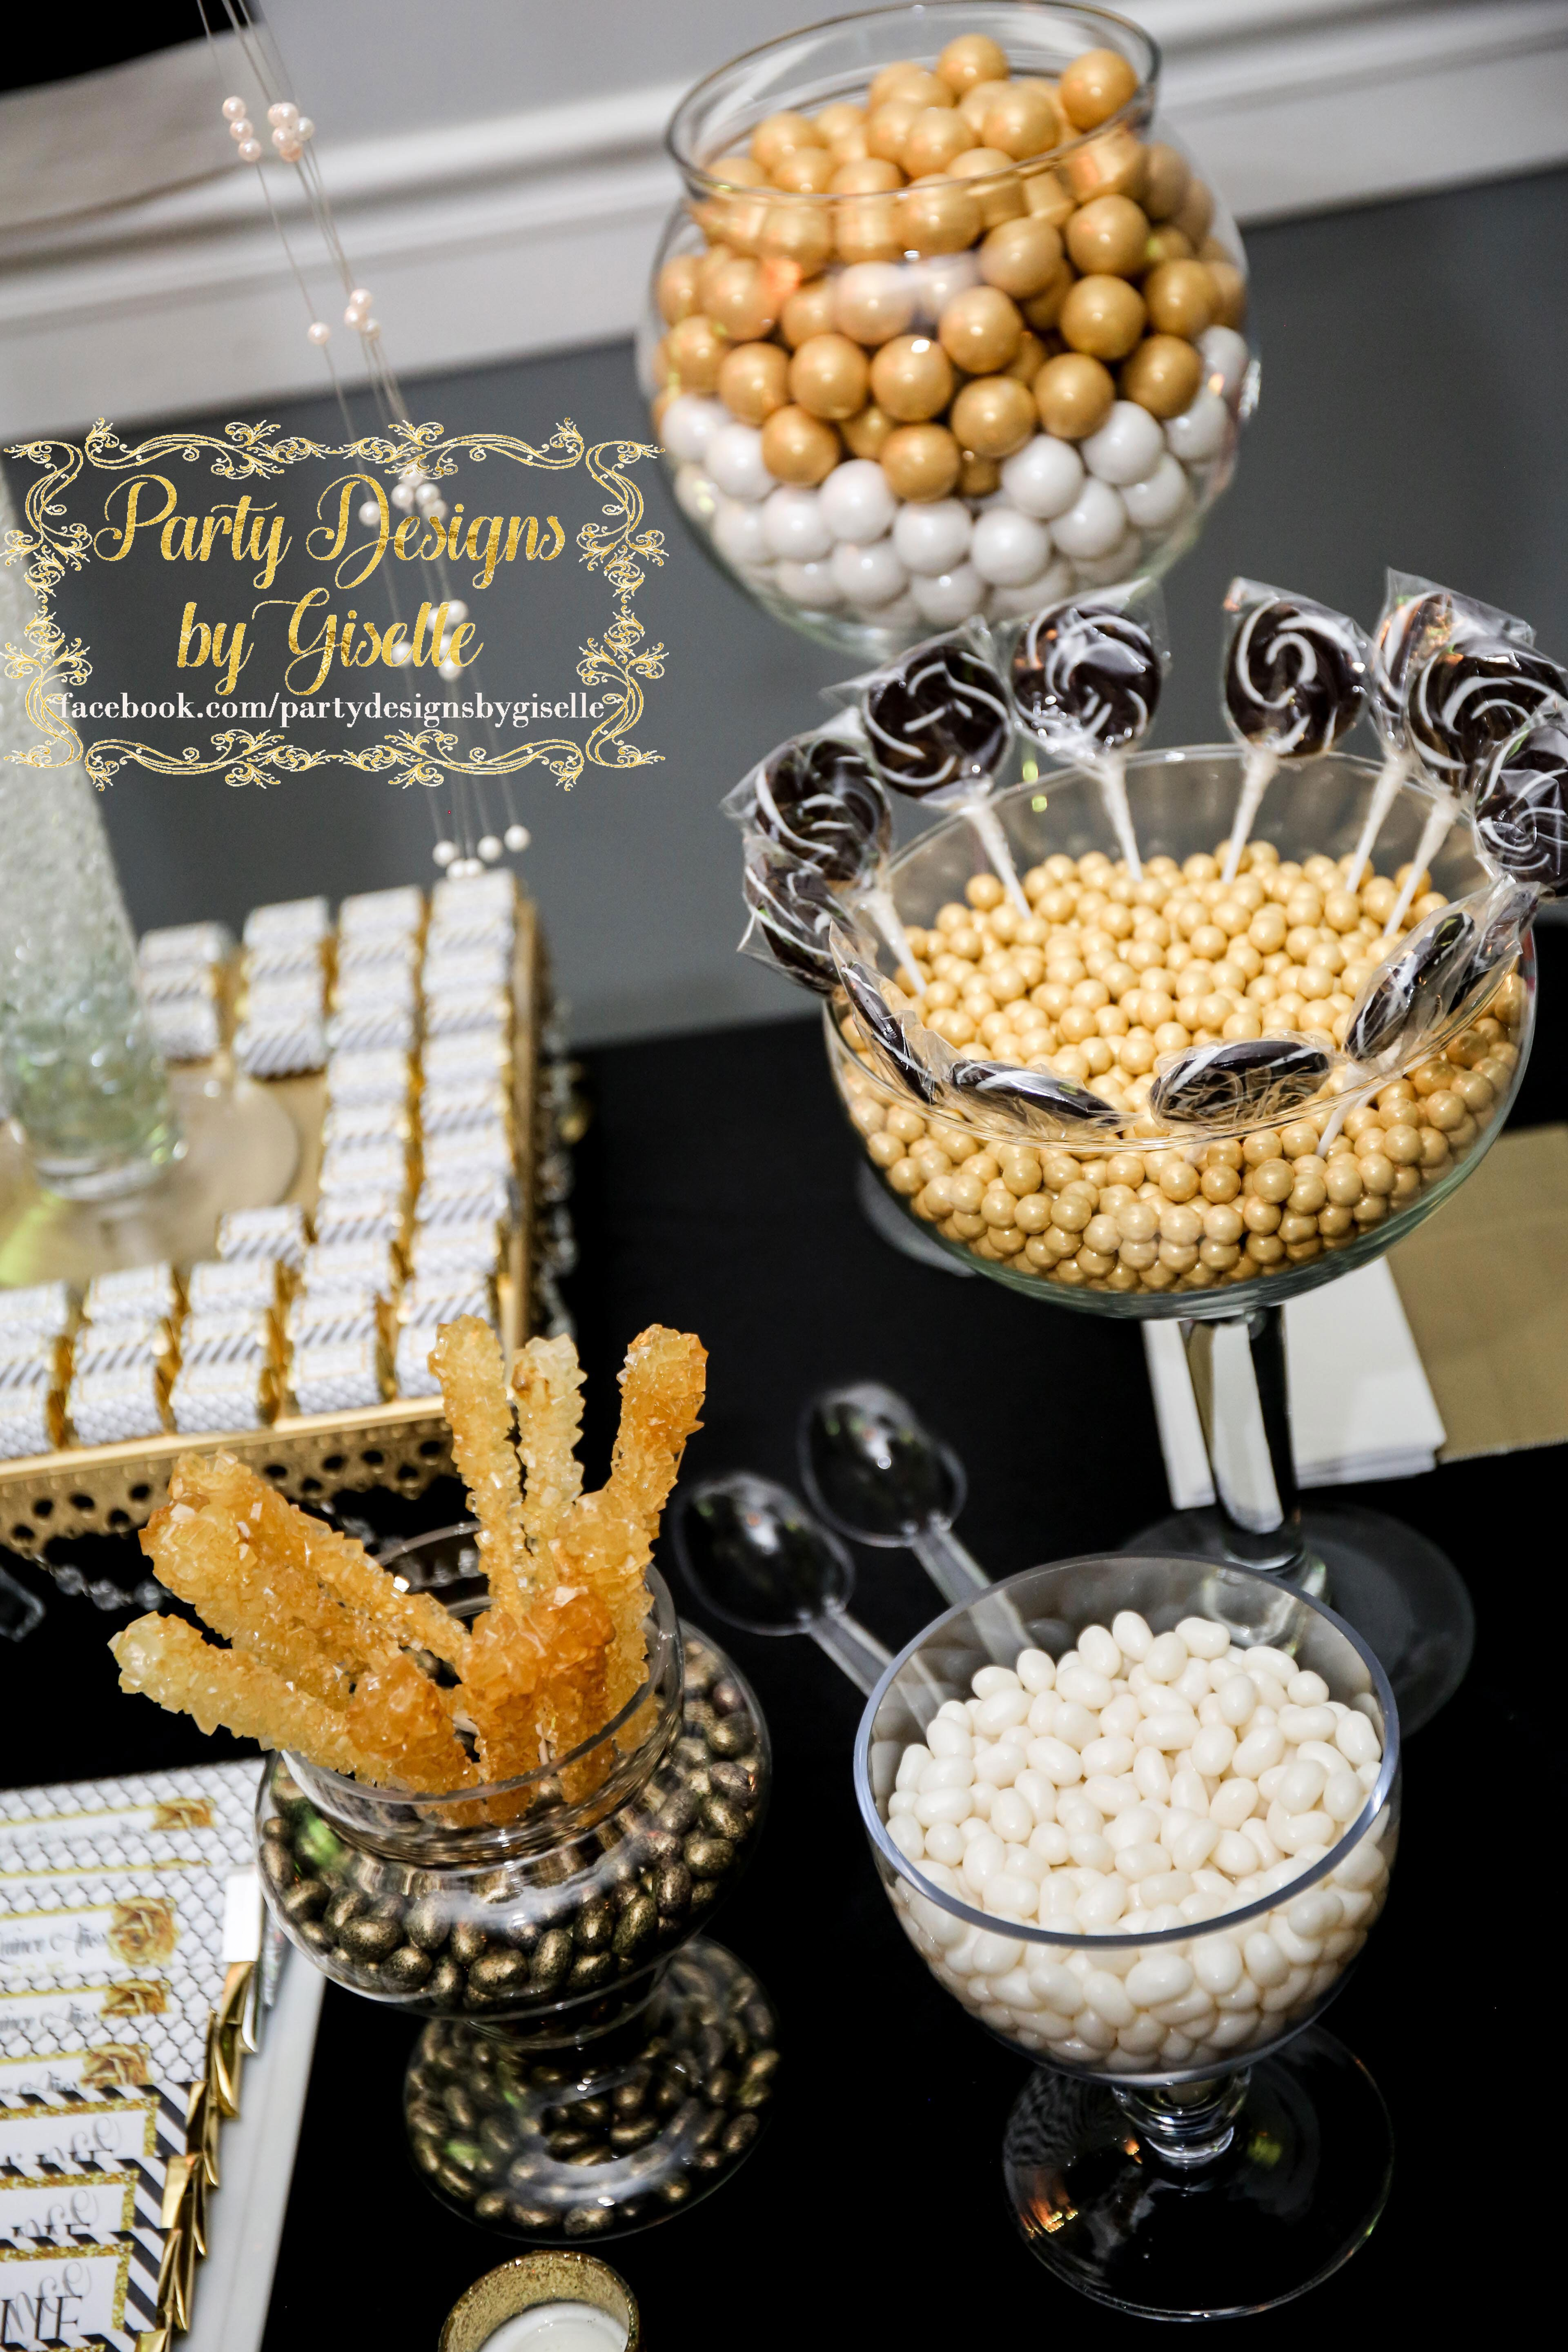 Looking for party ideas perfect for a black tie event?! Check out this Fabulous 50th Black & Gold Birthday Party submitted by Leydis Roy of Design My Party out of Hallandale, FL!. From the awesome tuxedo cake to the fun and fab party invitation and printables, this event is full of fabulous details, perfect for any elegant affair!